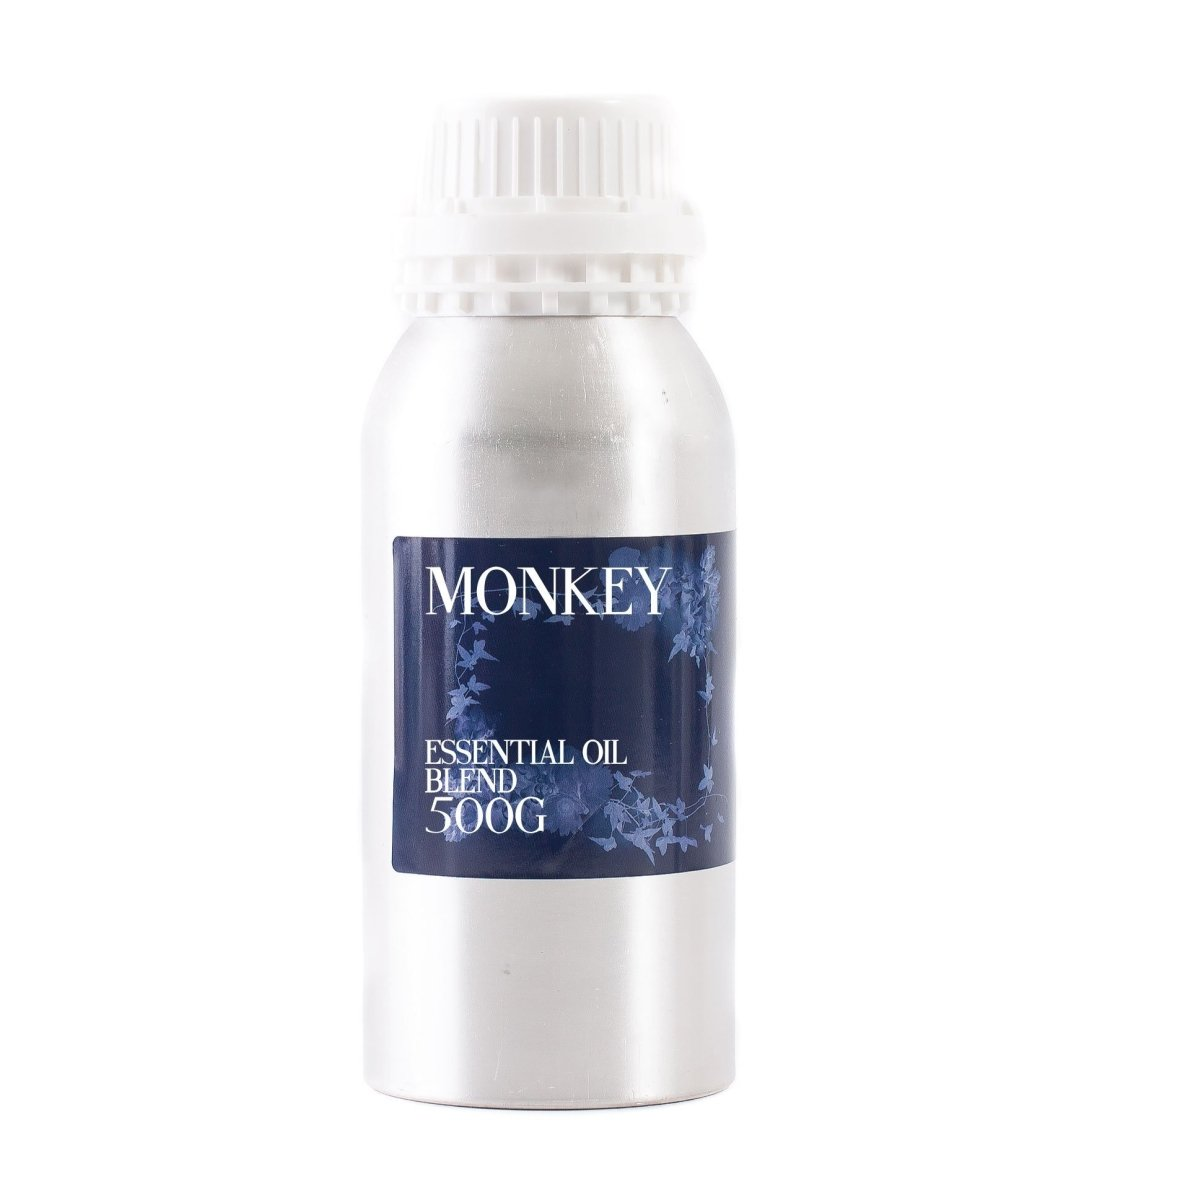 Monkey - Chinese Zodiac - Essential Oil Blend - Mystic Moments UK